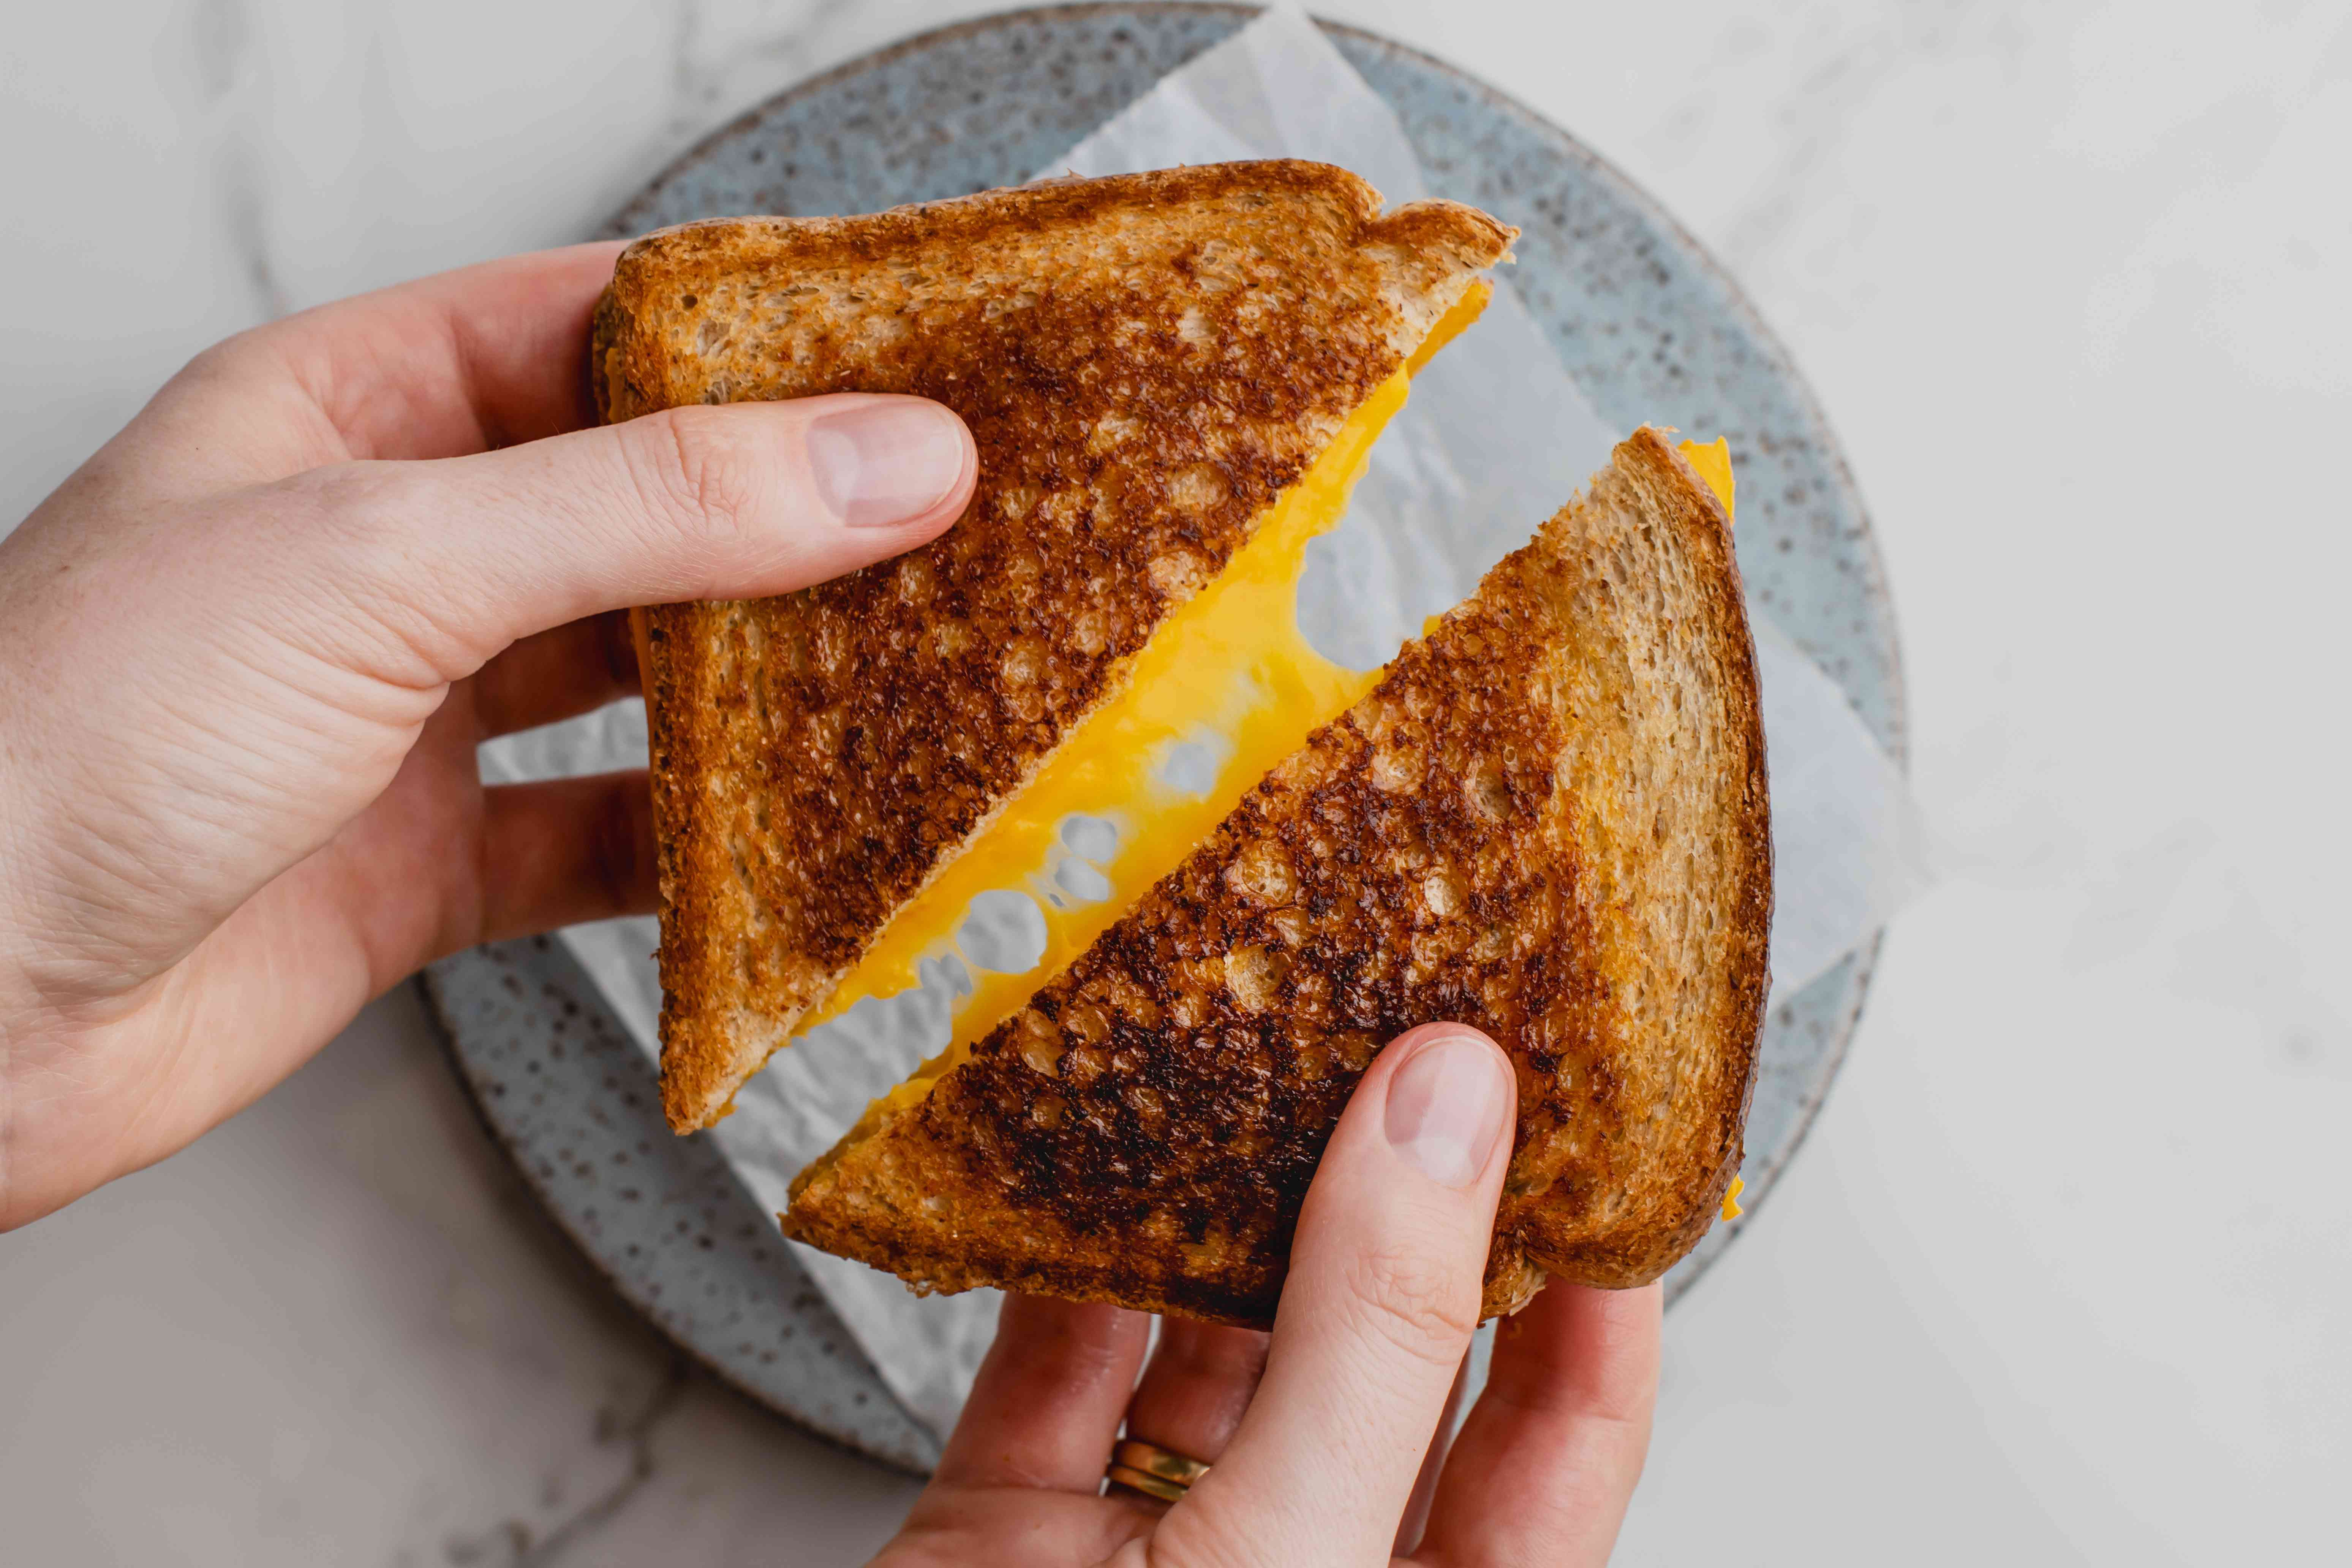 Serve grilled cheese